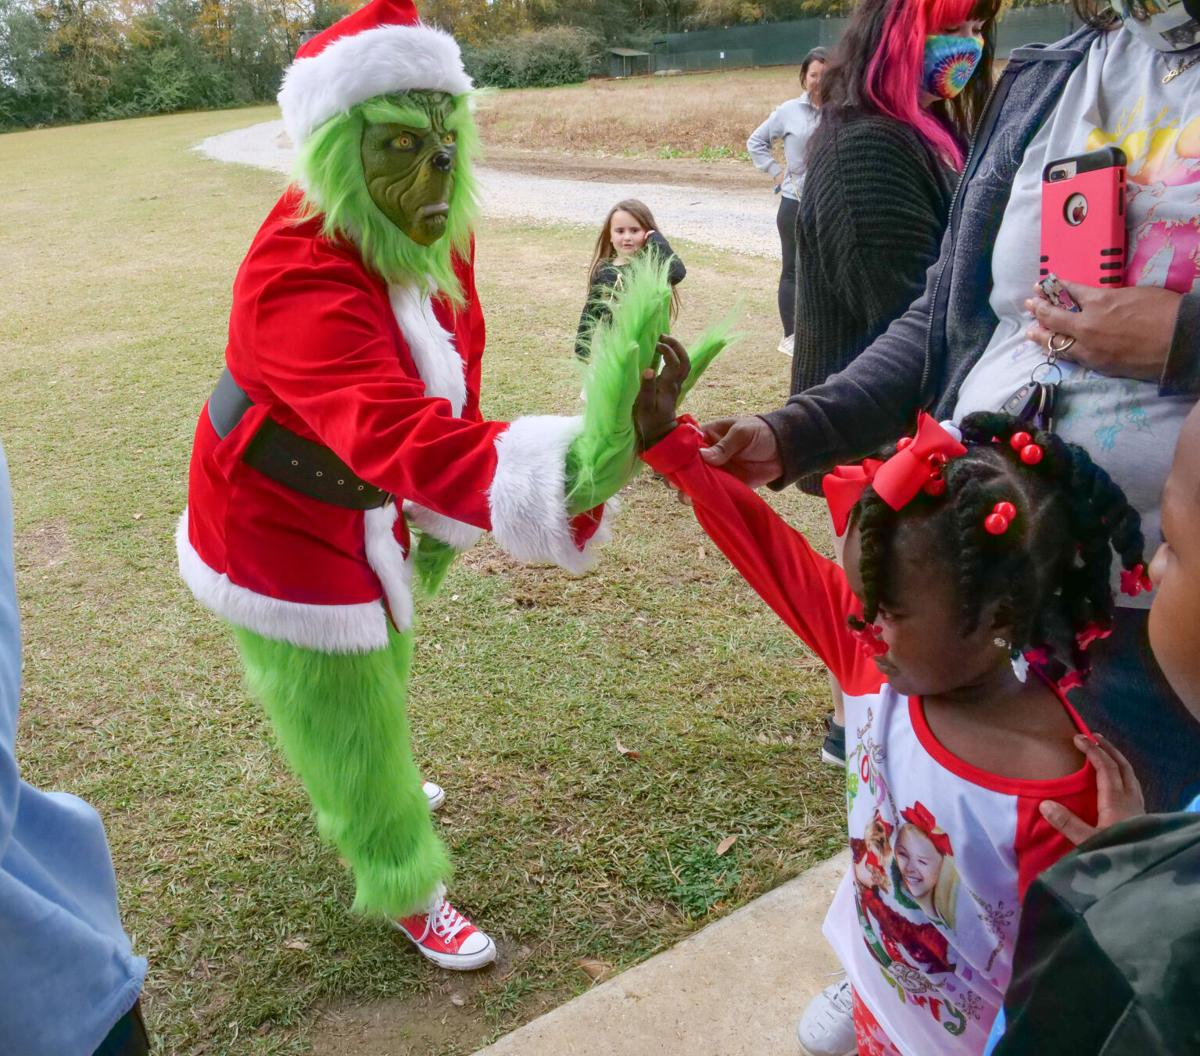 Pancakes with the Grinch at the Barnhill Preserve006.JPG